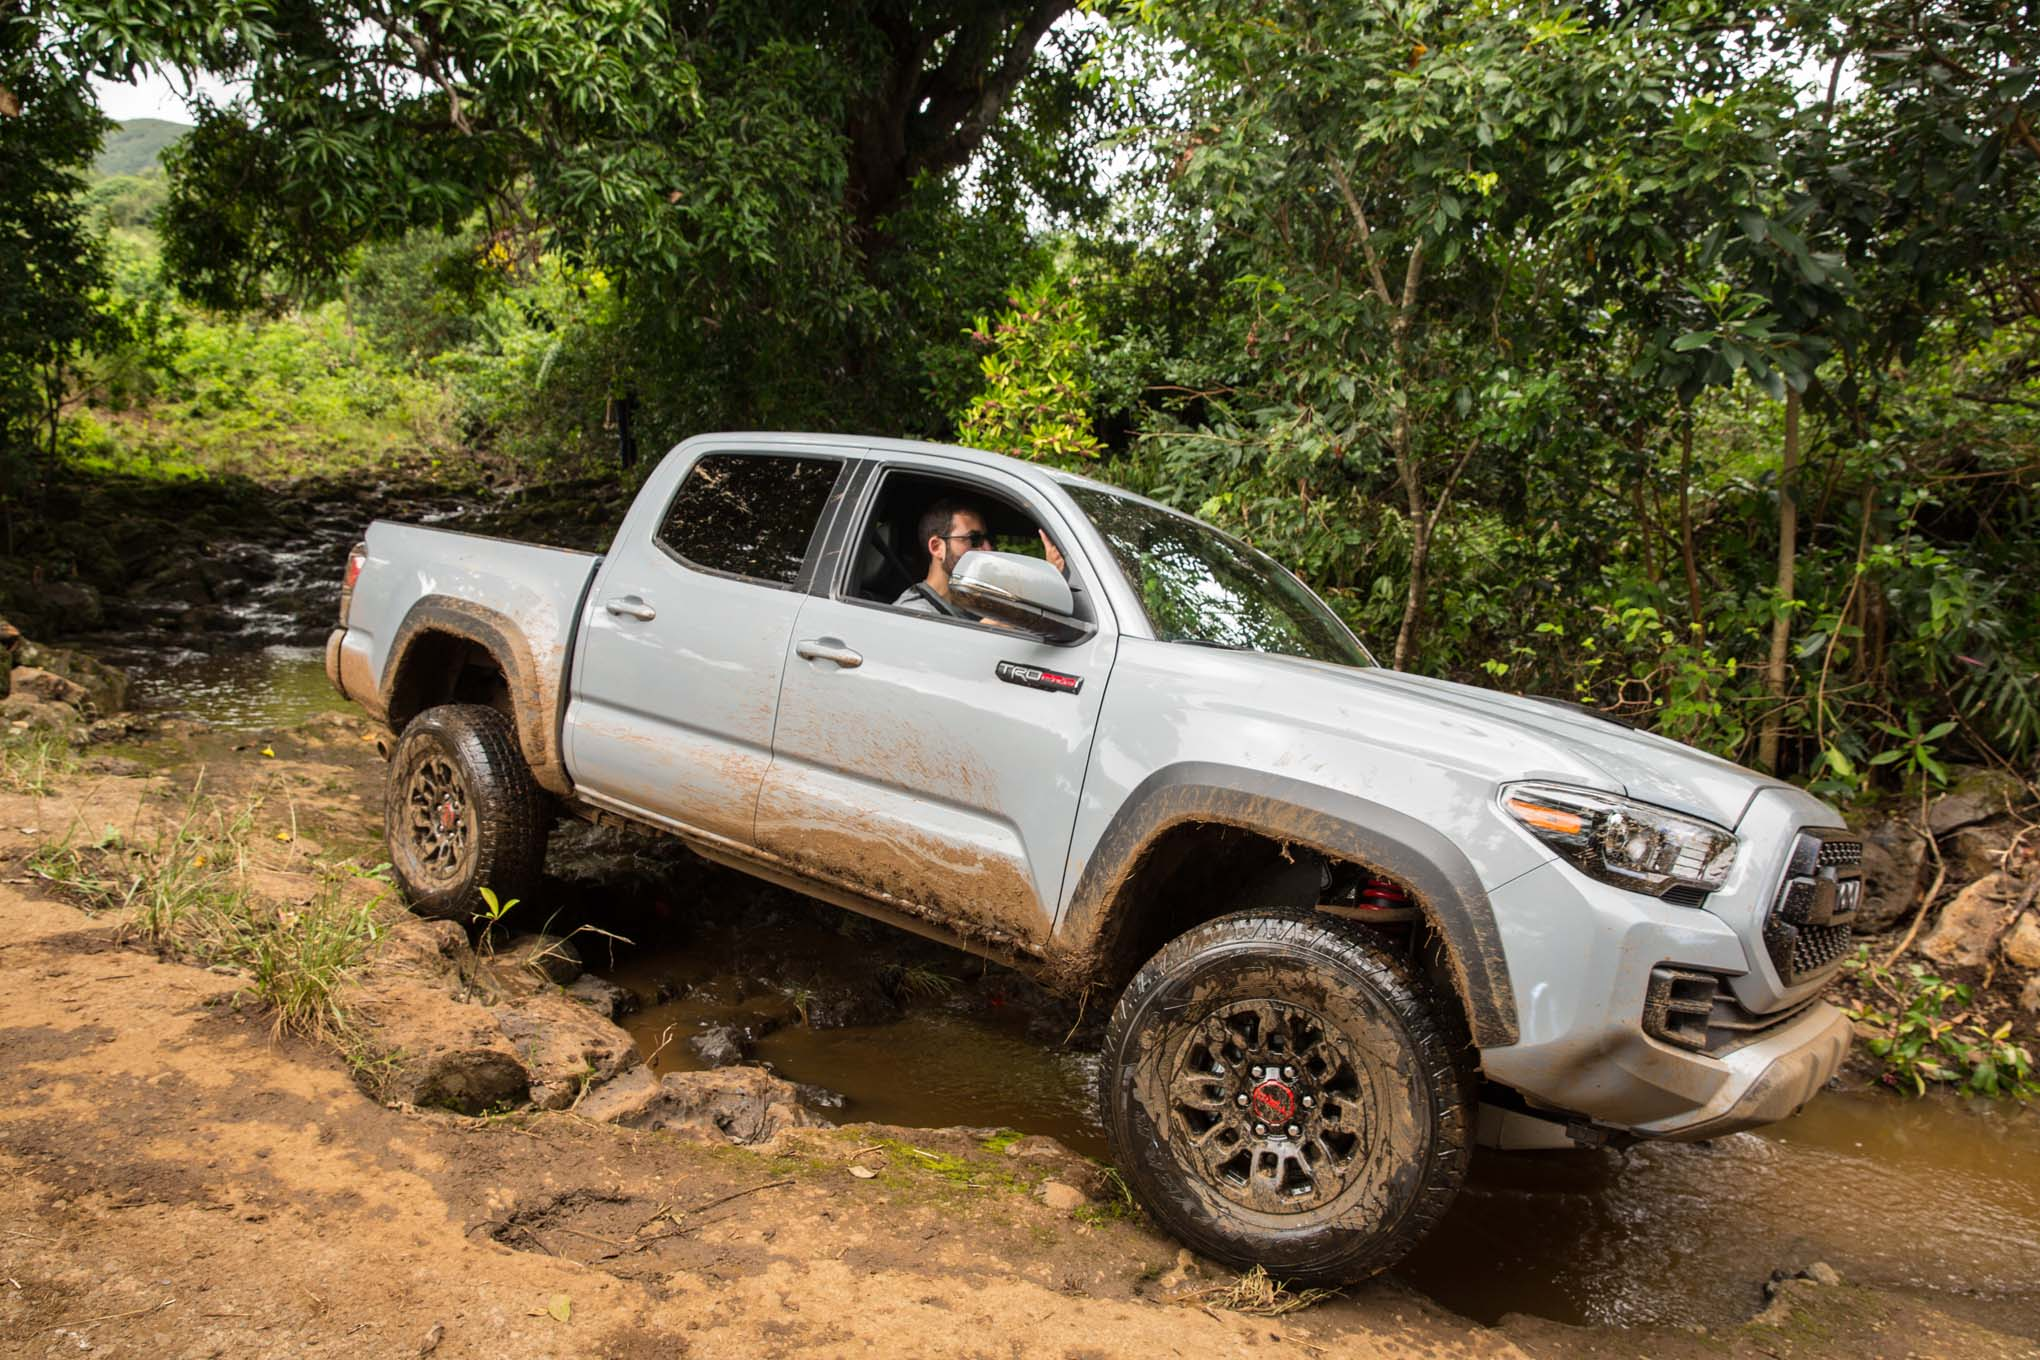 2017 Toyota Tacoma 4x4 TRD Pro front three quarter off ...